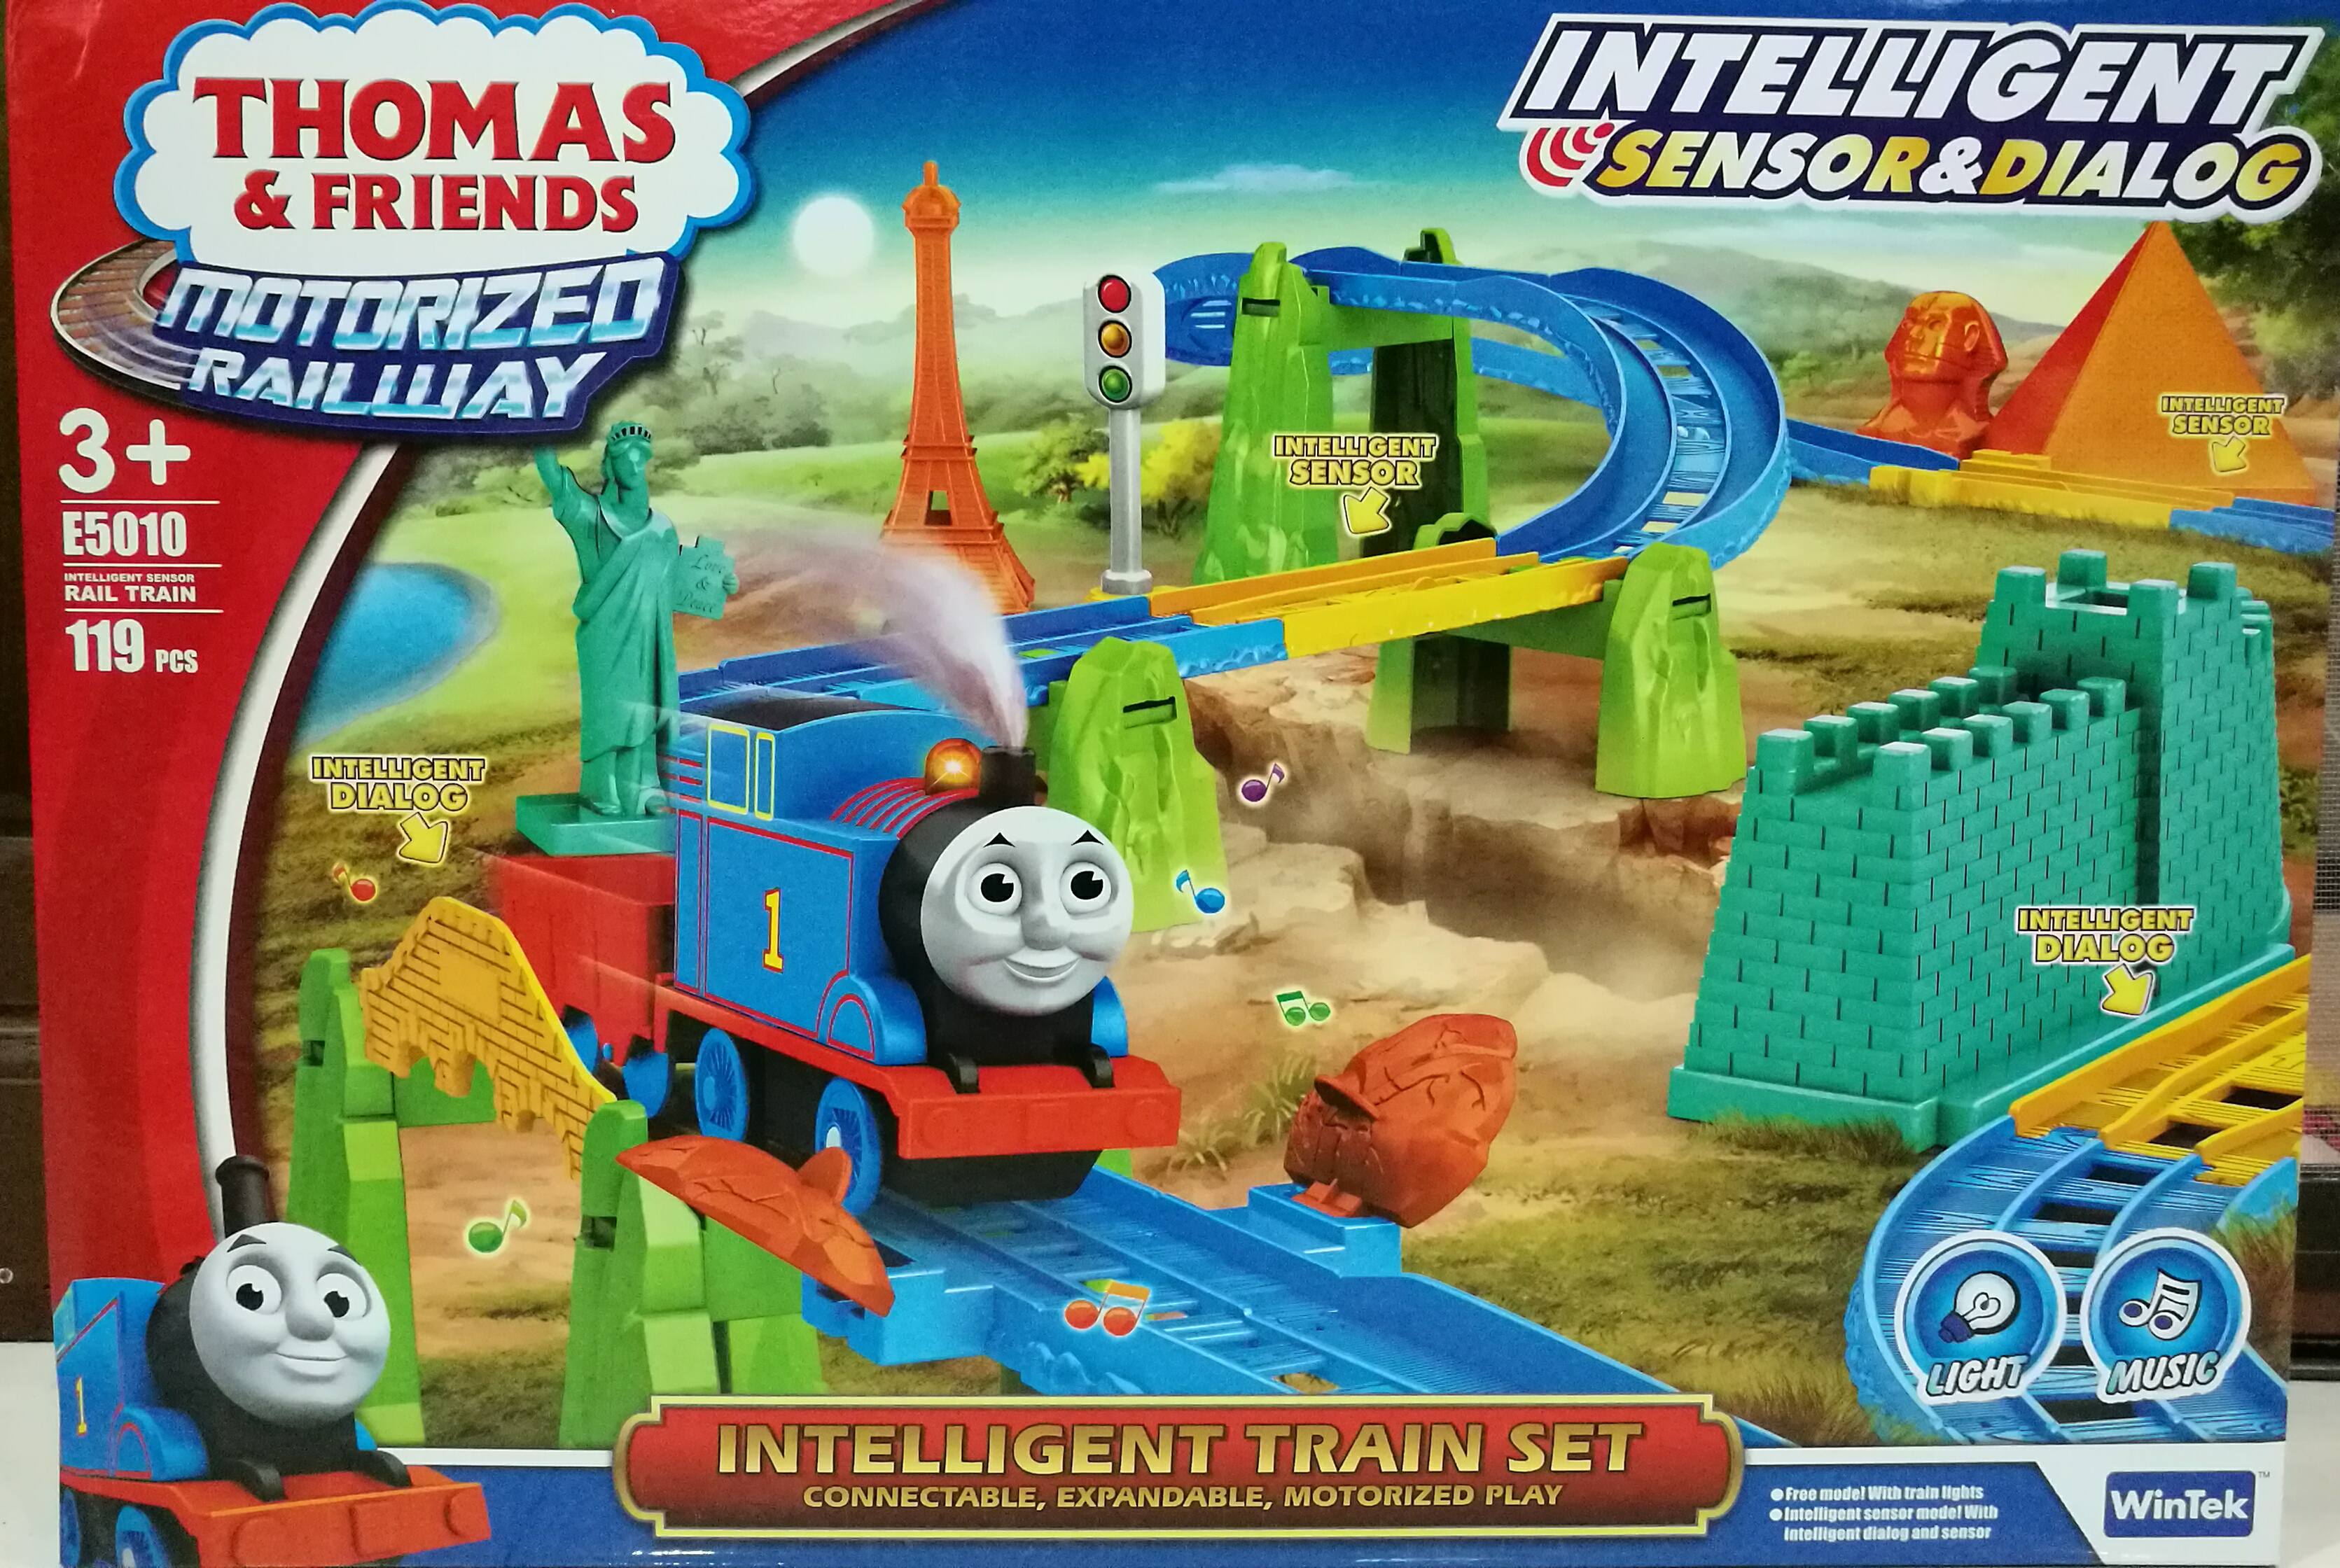 รถไฟ Thomas and friends intelligent sensor & dialog 119 ชิ้น by wintek ส่งฟรี